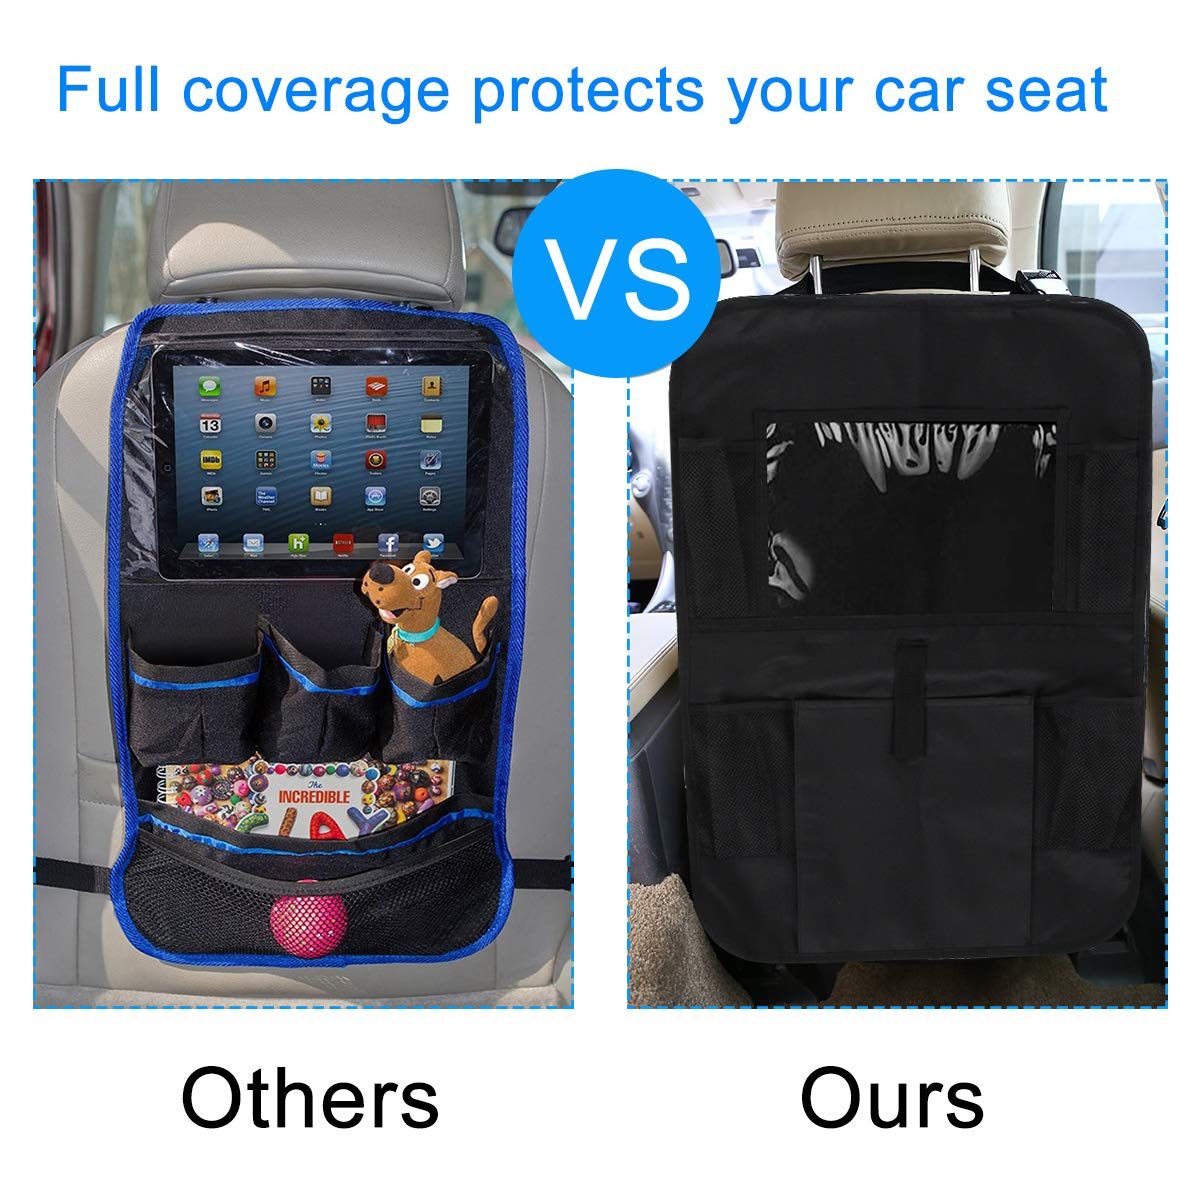 2 Pack LAurth Backseat Car Organizer with Touch Screen Tablet Holder Multi-Pockets Car Kick Mat for Kids Toys Drink Bottle Drink Vehicles Magazines Storage Seat Back Protectors